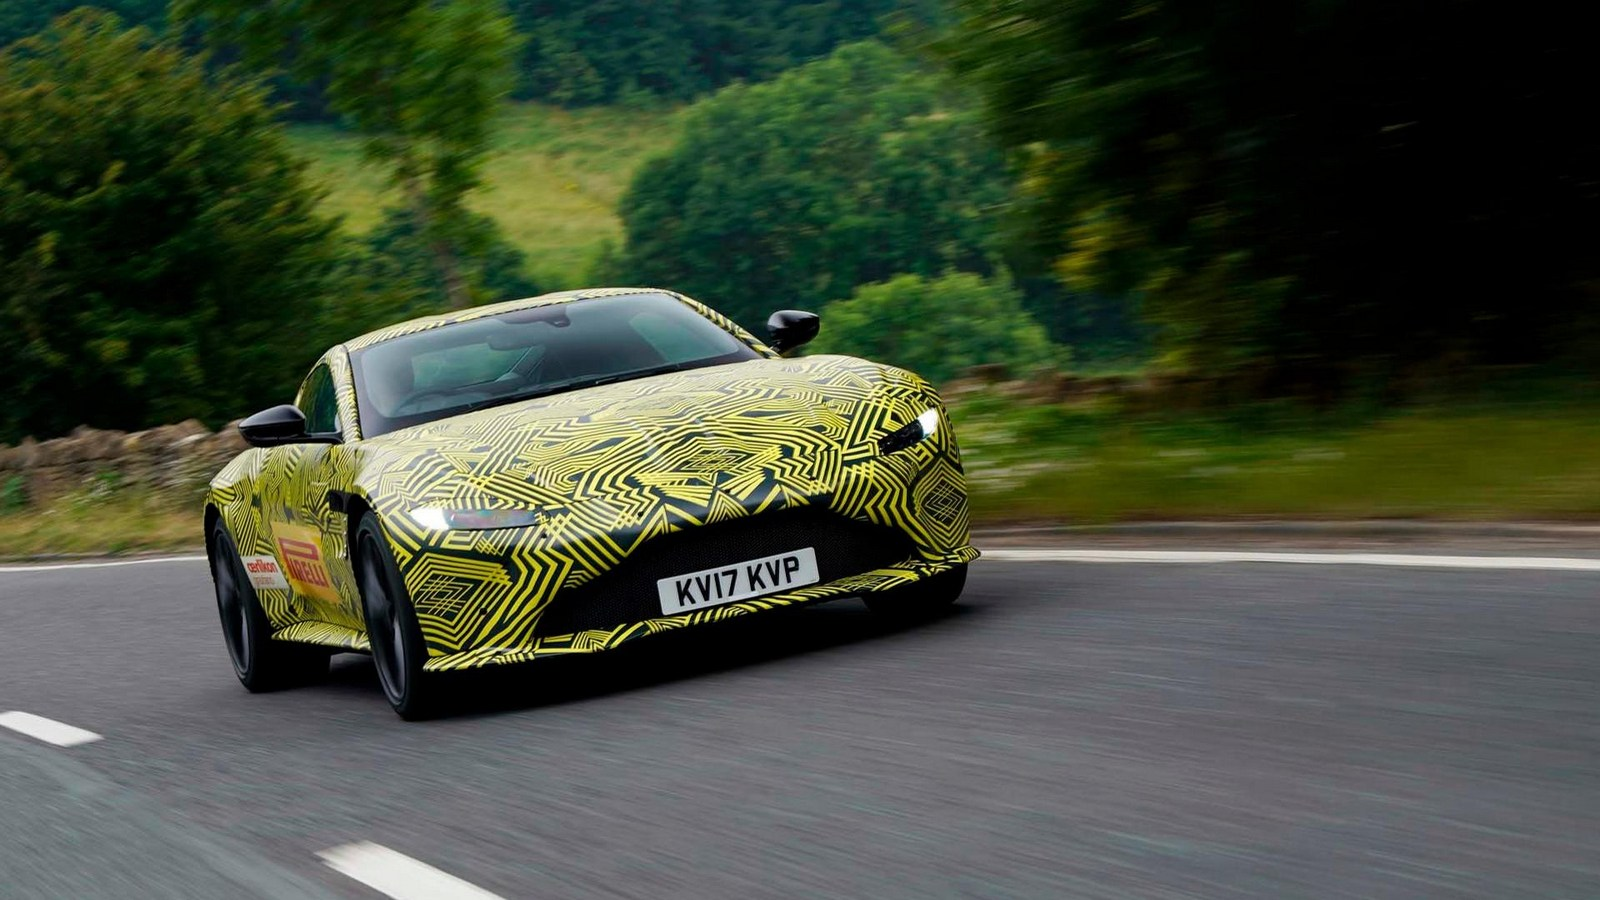 Aston Martin Vantage, Audi RS 7, F22-inspired Ford F-150 Raptor: This Week's Top Photos